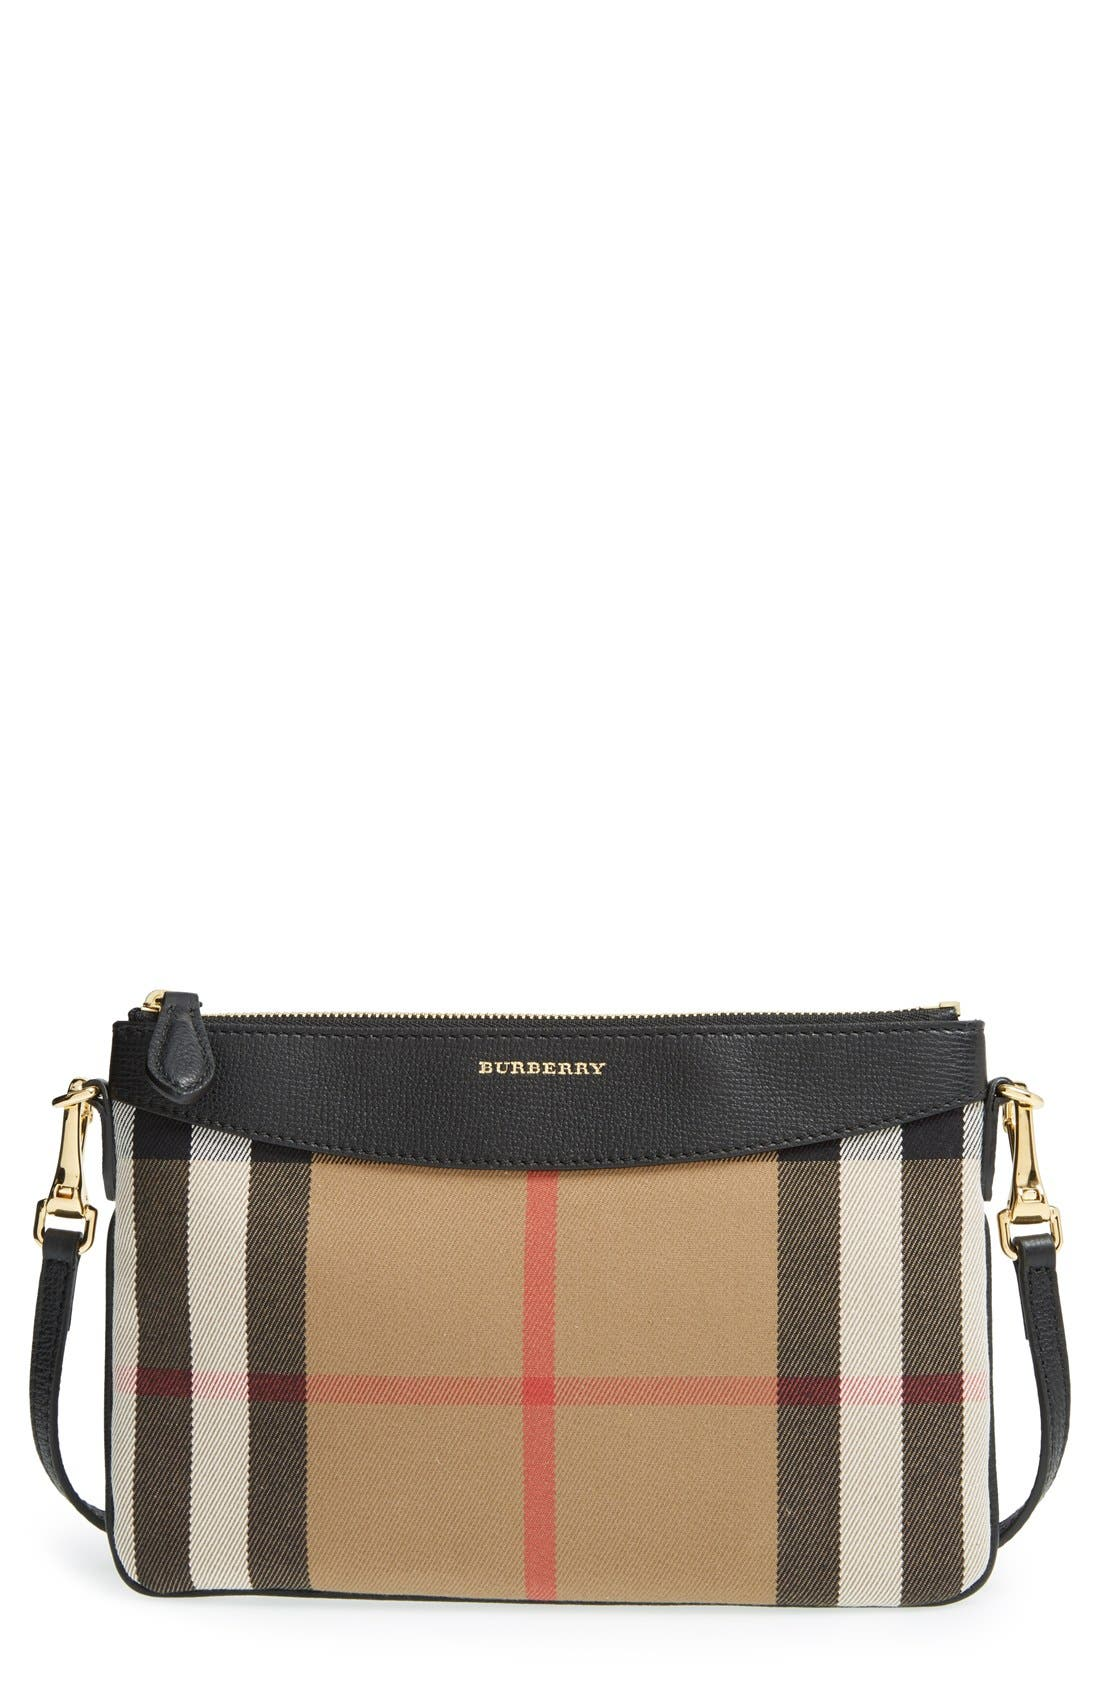 BURBERRY 'Peyton - House Check' Crossbody Bag, Main, color, 001